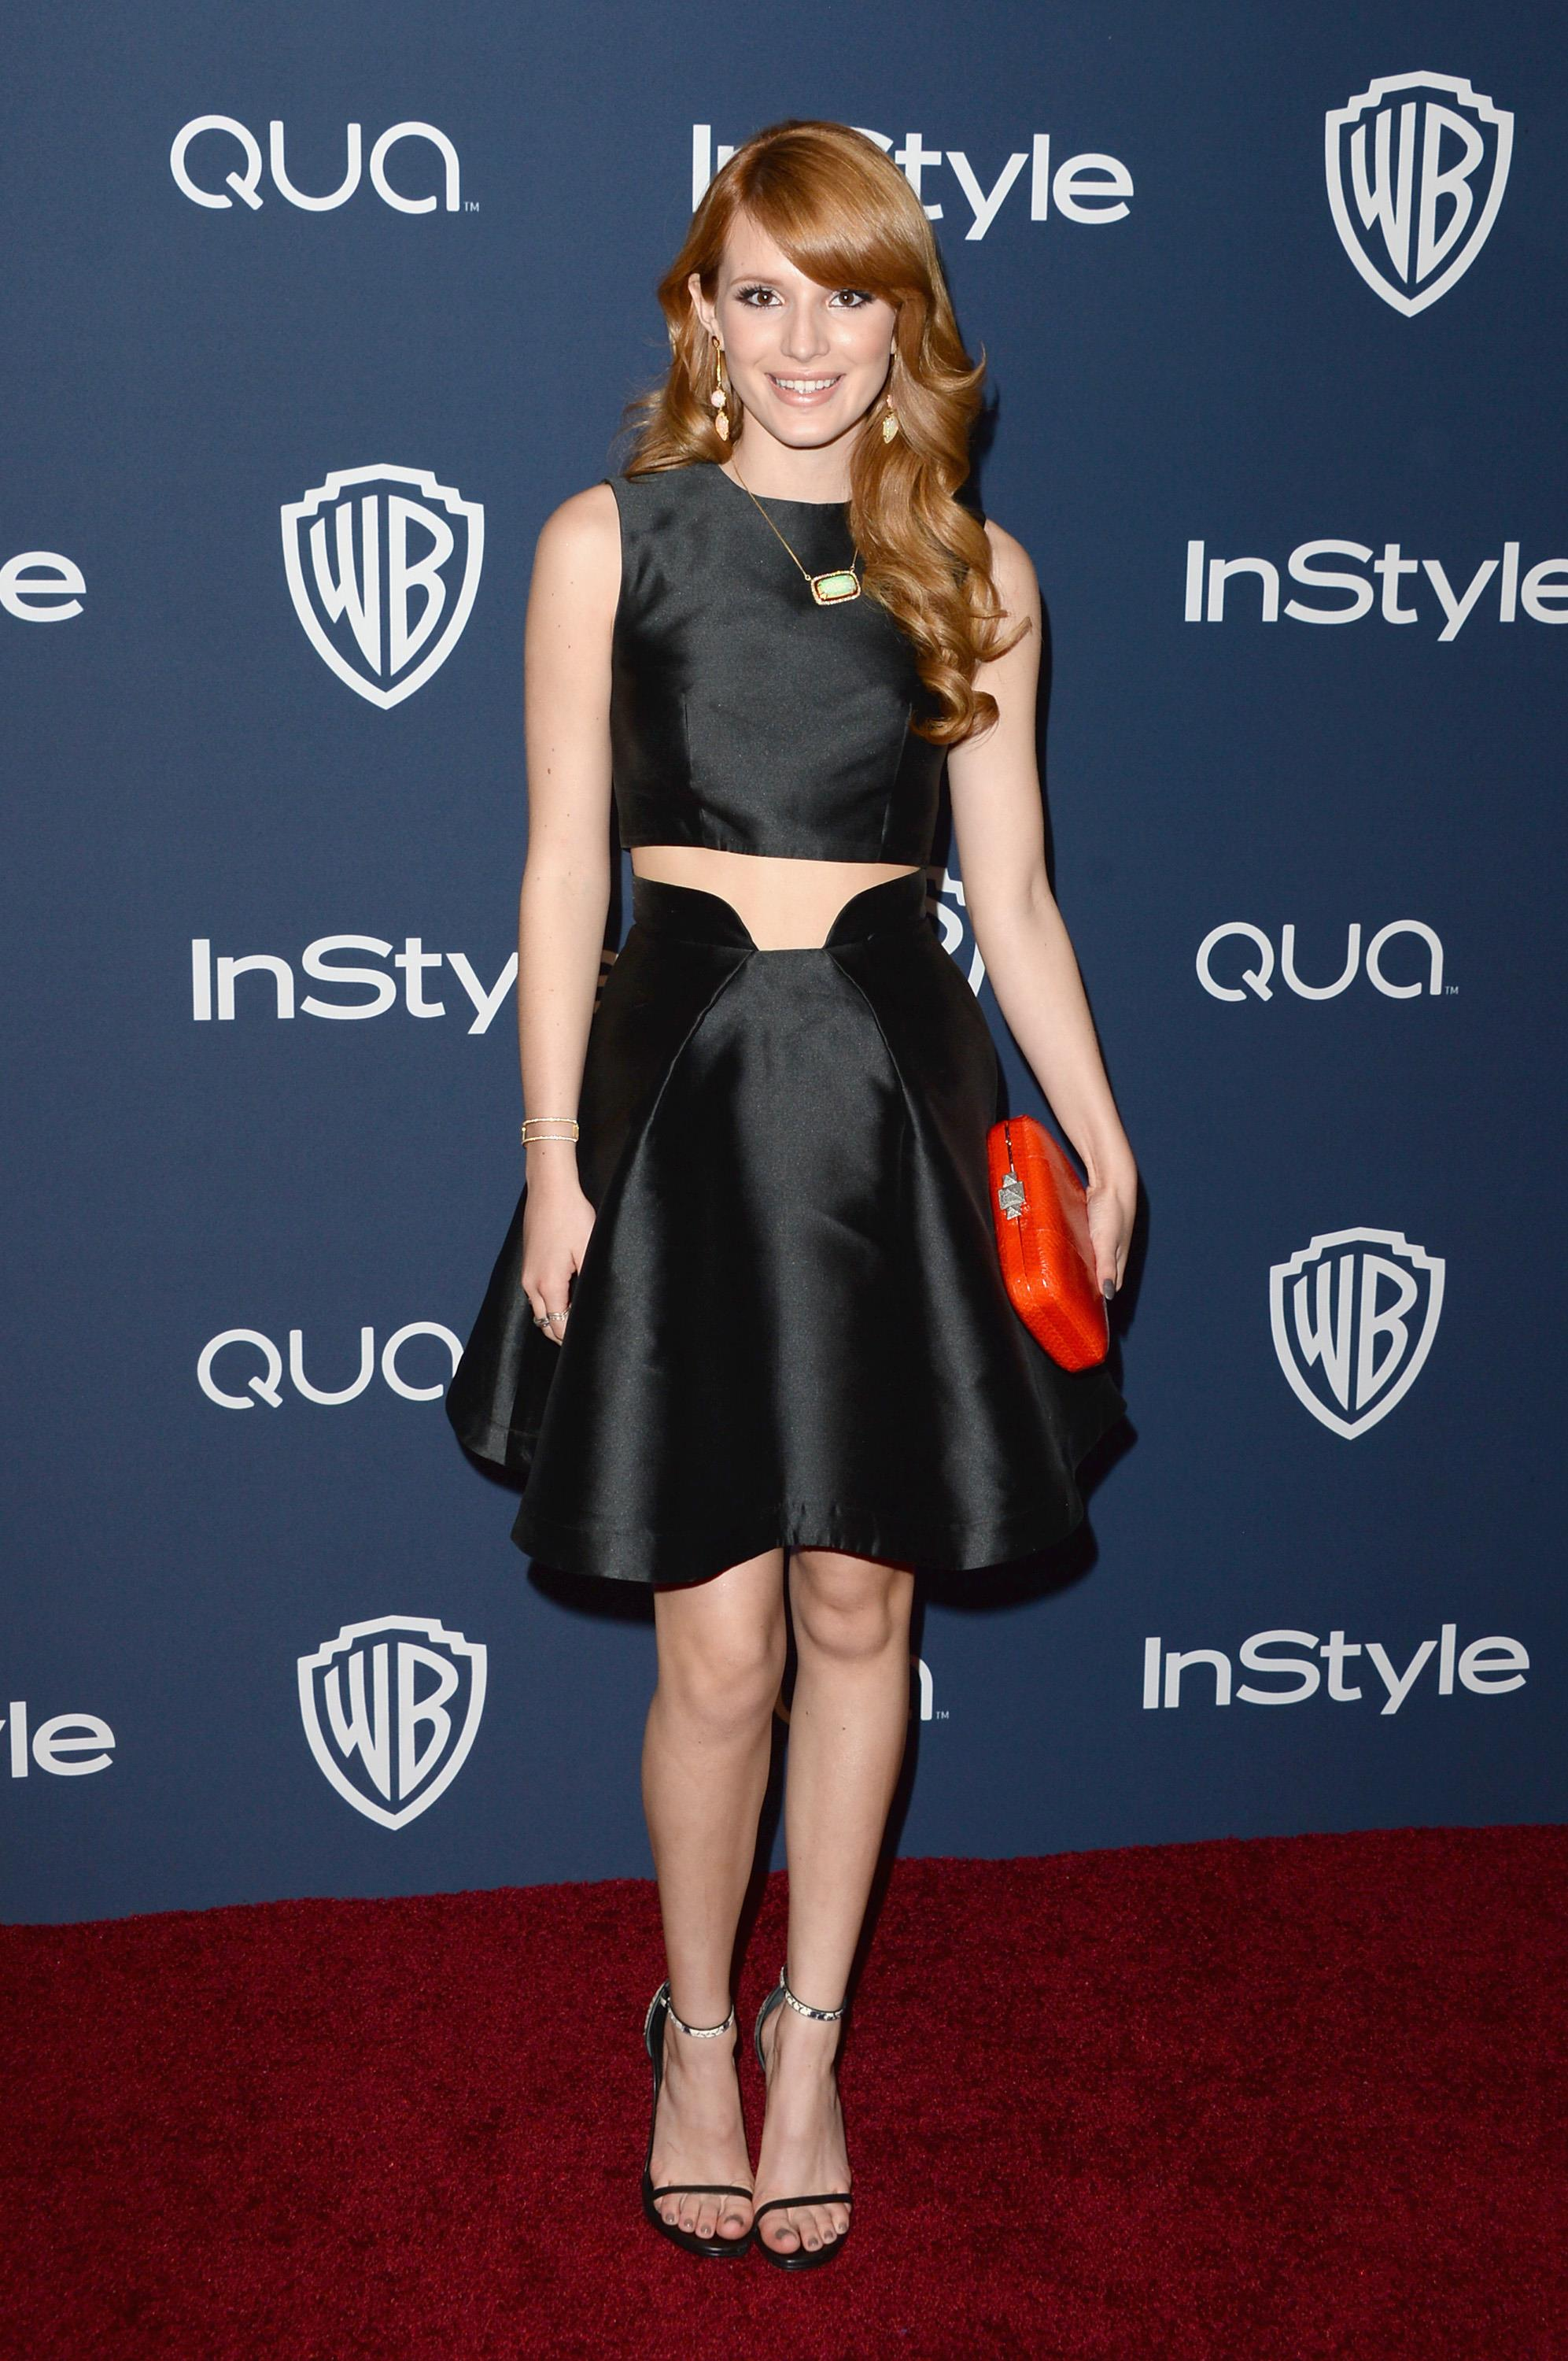 Bella Thorne Hollywood: Who Is Shake It Up Star Feuding